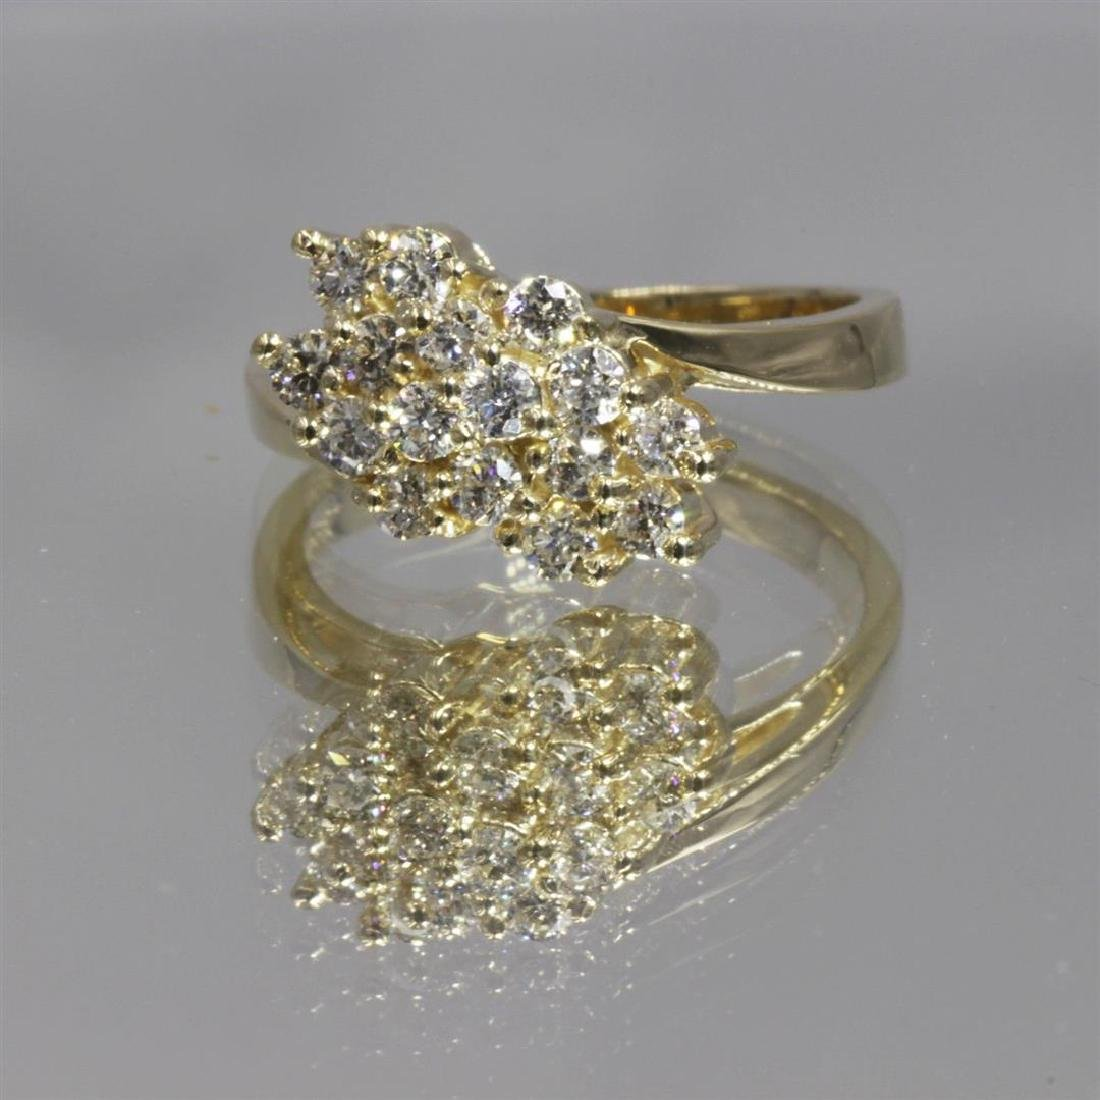 14KT Yellow Gold 0.64 ctw Diamond Cluster Ring - 6